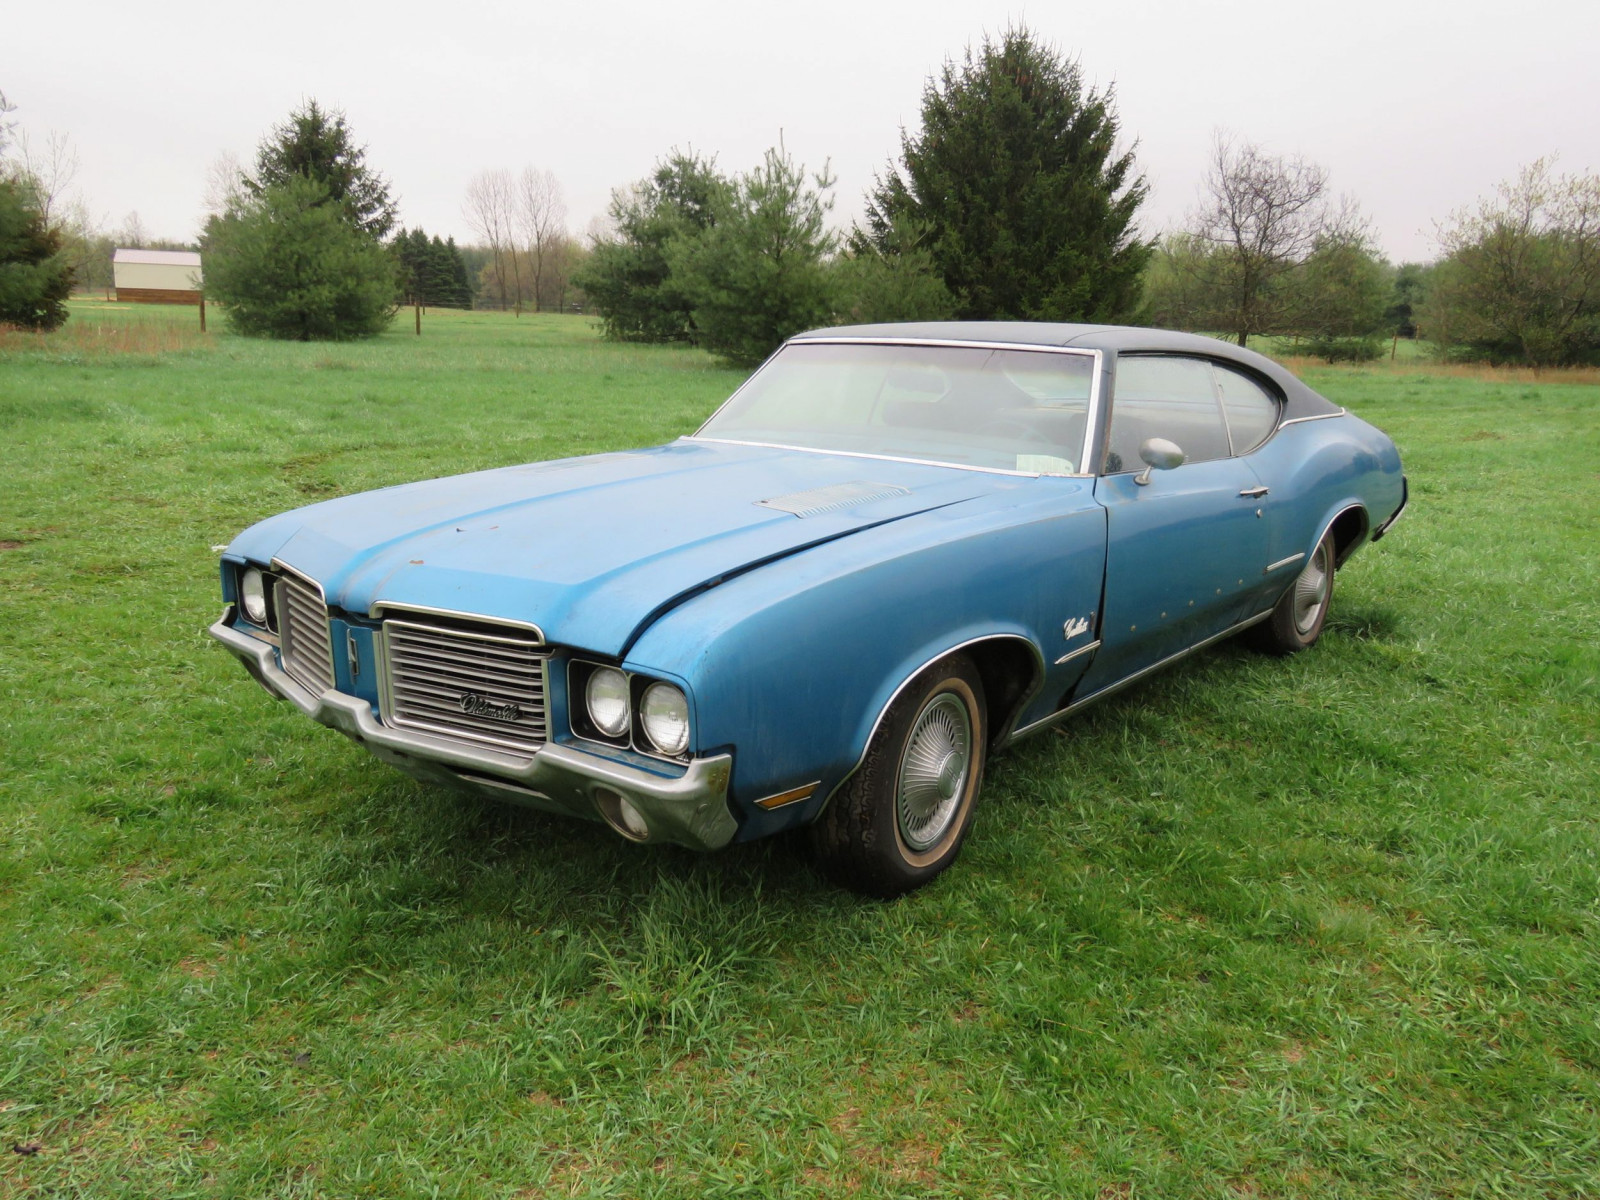 1972 Oldsmobile Cutlass C Coupe - Image 1